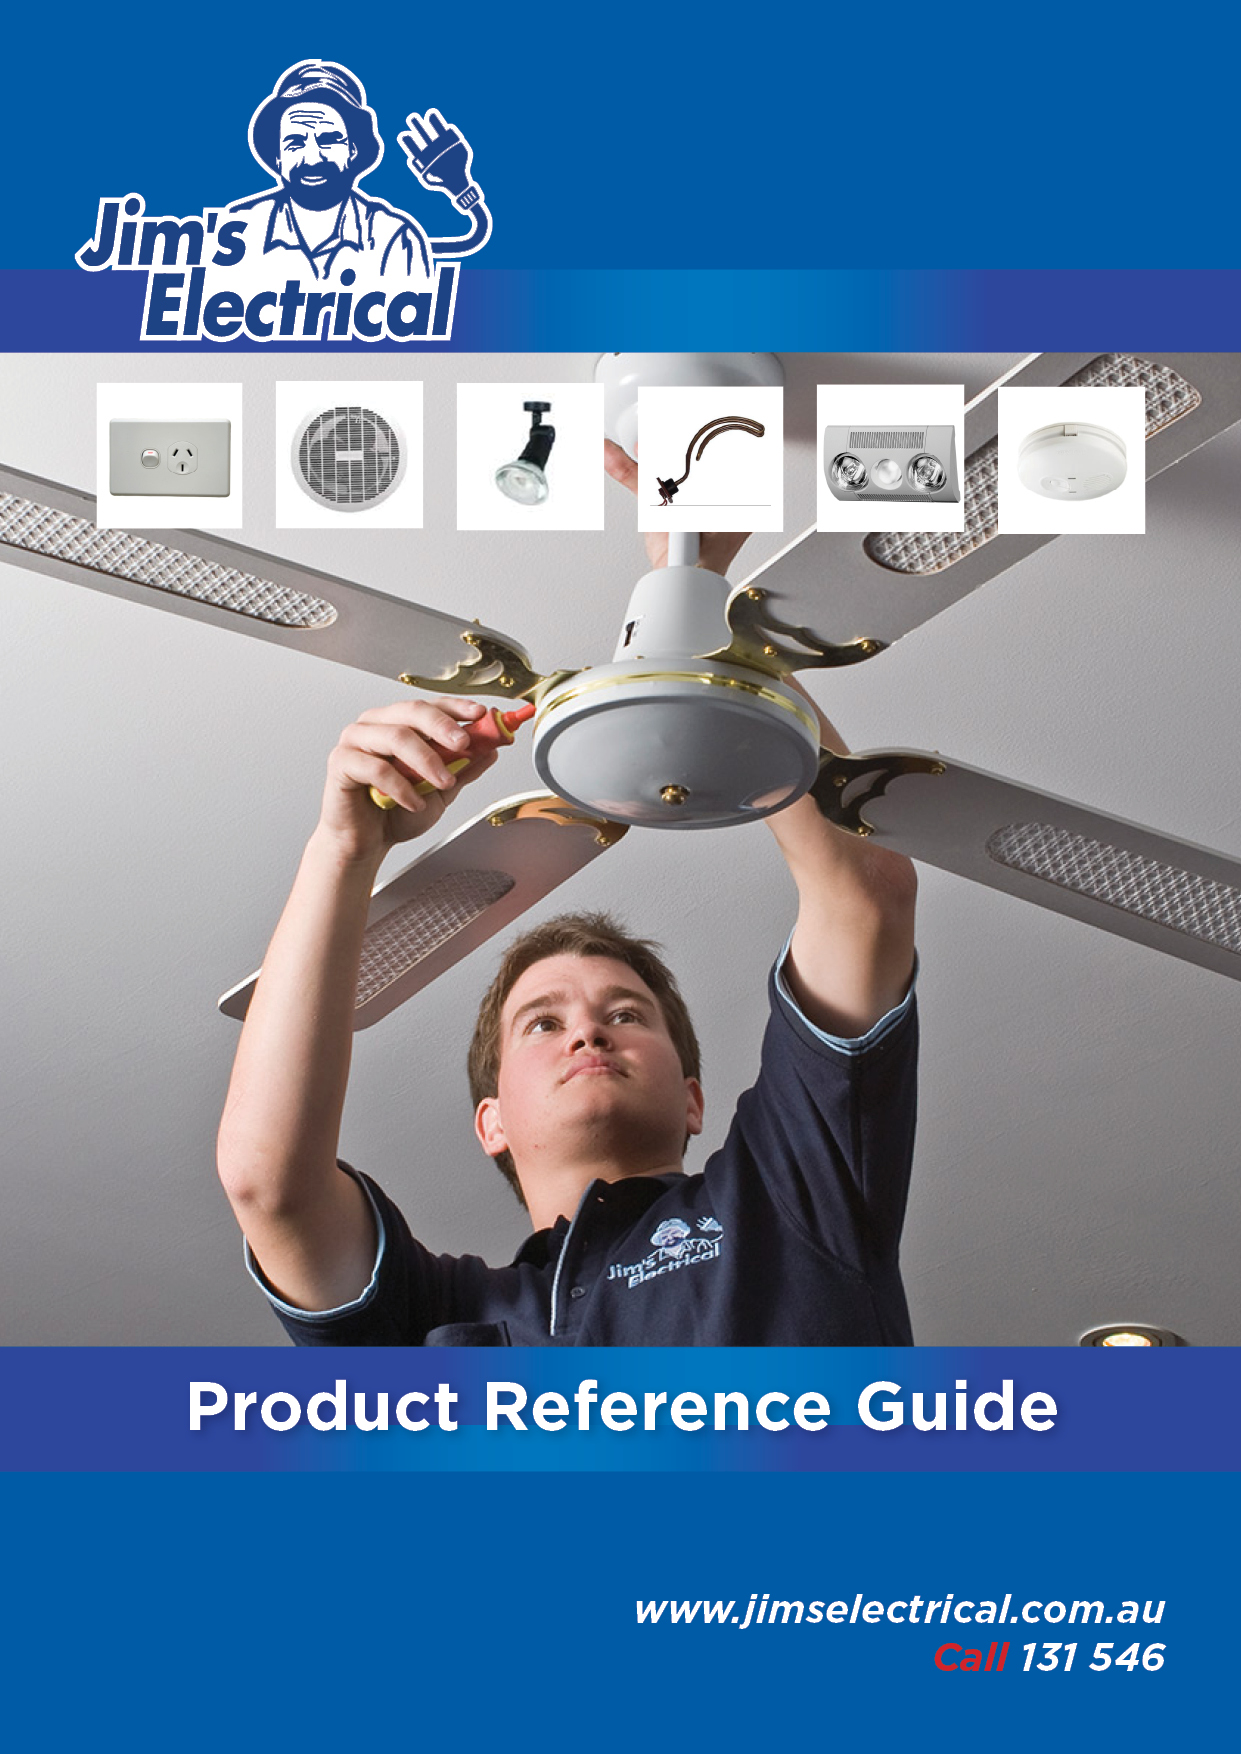 Jims_Electrical_Product_Reference_Guide